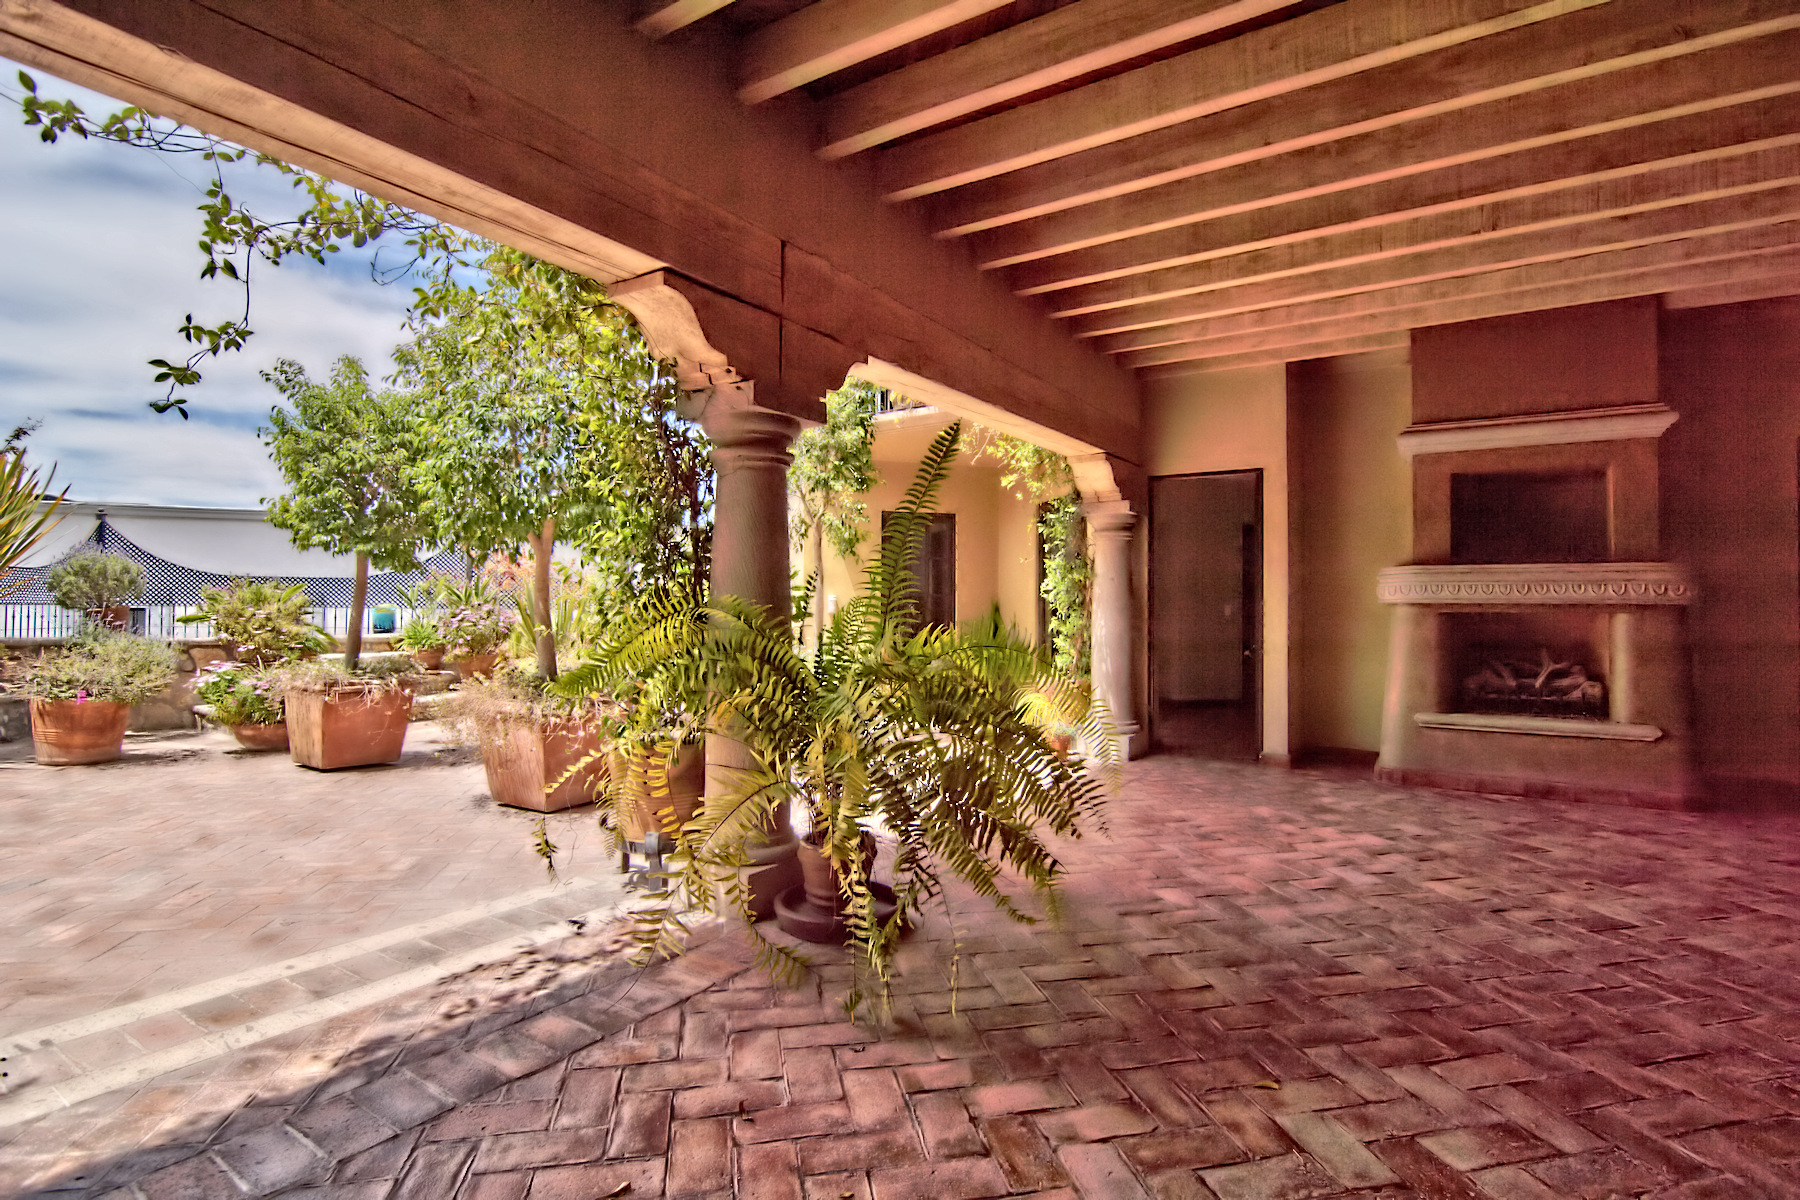 Additional photo for property listing at CASA CHEPITO Centro, San Miguel De Allende, Guanajuato México